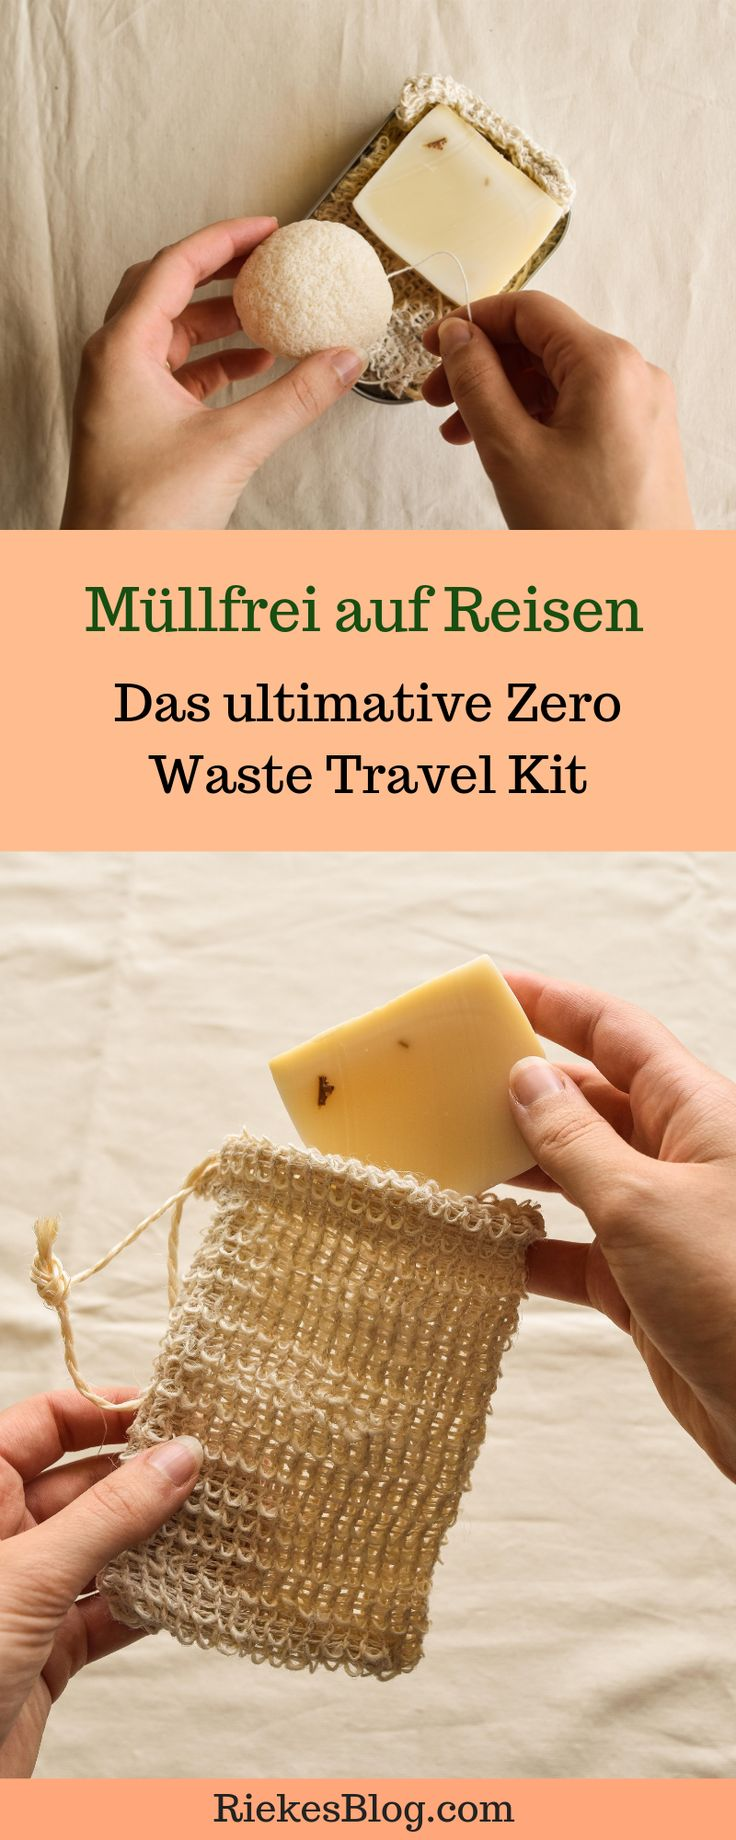 Müllfrei auf Reisen: Das ultimative Zero Waste Travel Kit